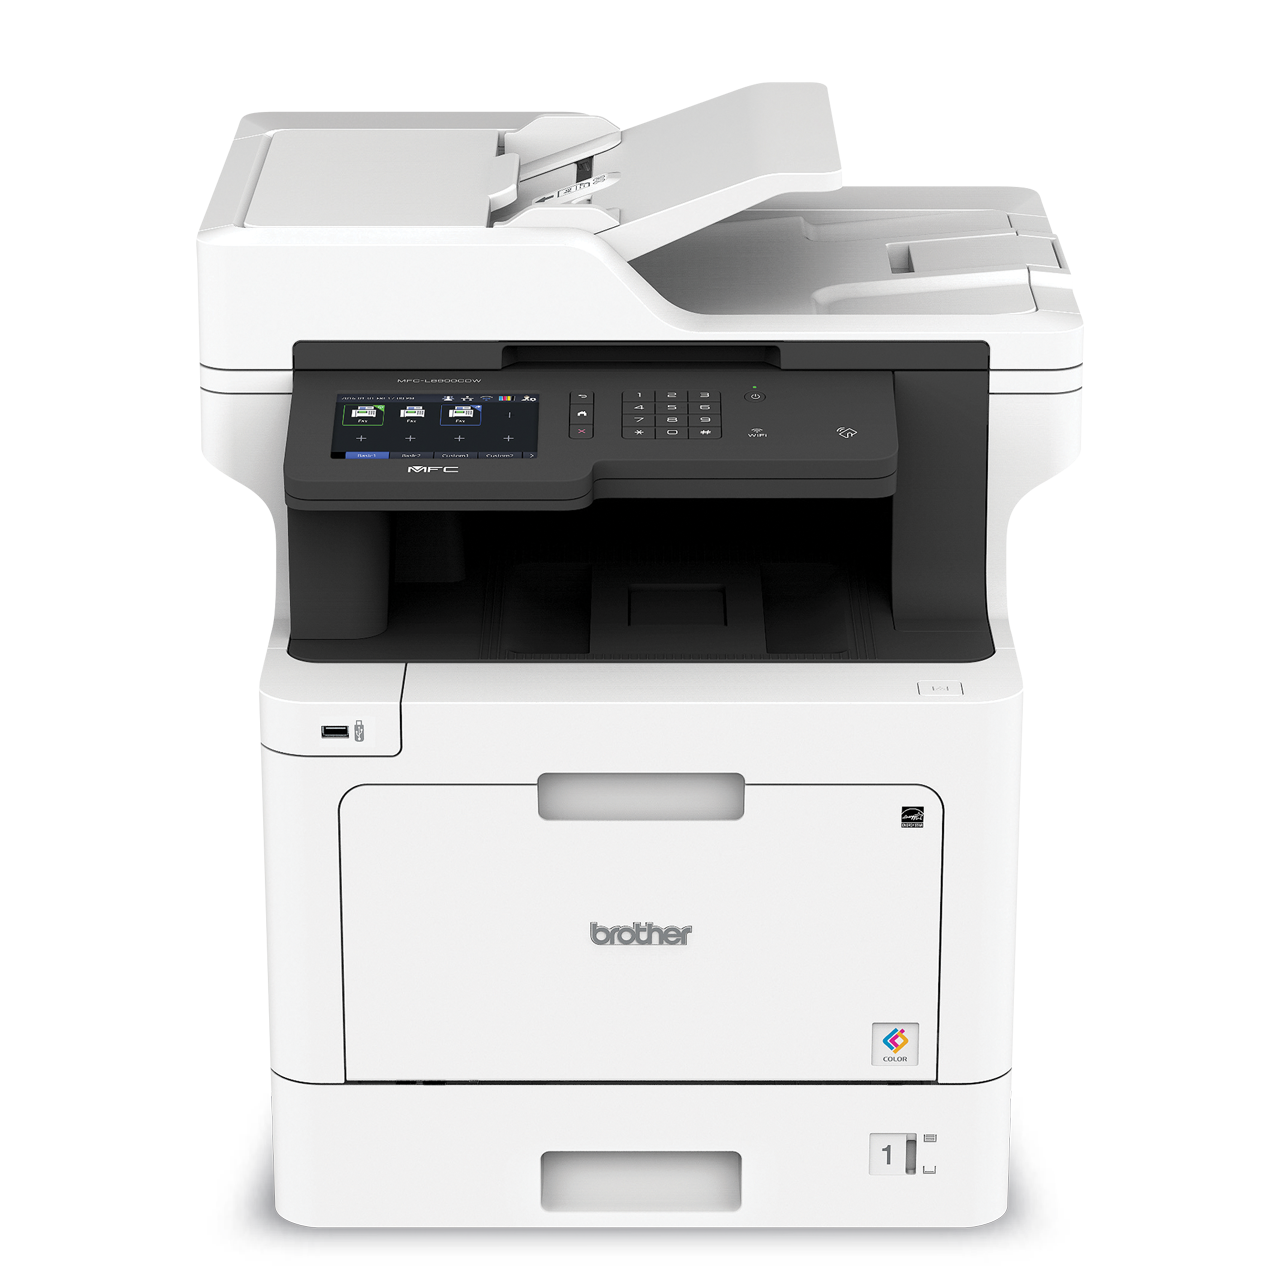 BROTHER MFC-L9550CDW(T) PRINTER DRIVER WINDOWS 7 (2019)